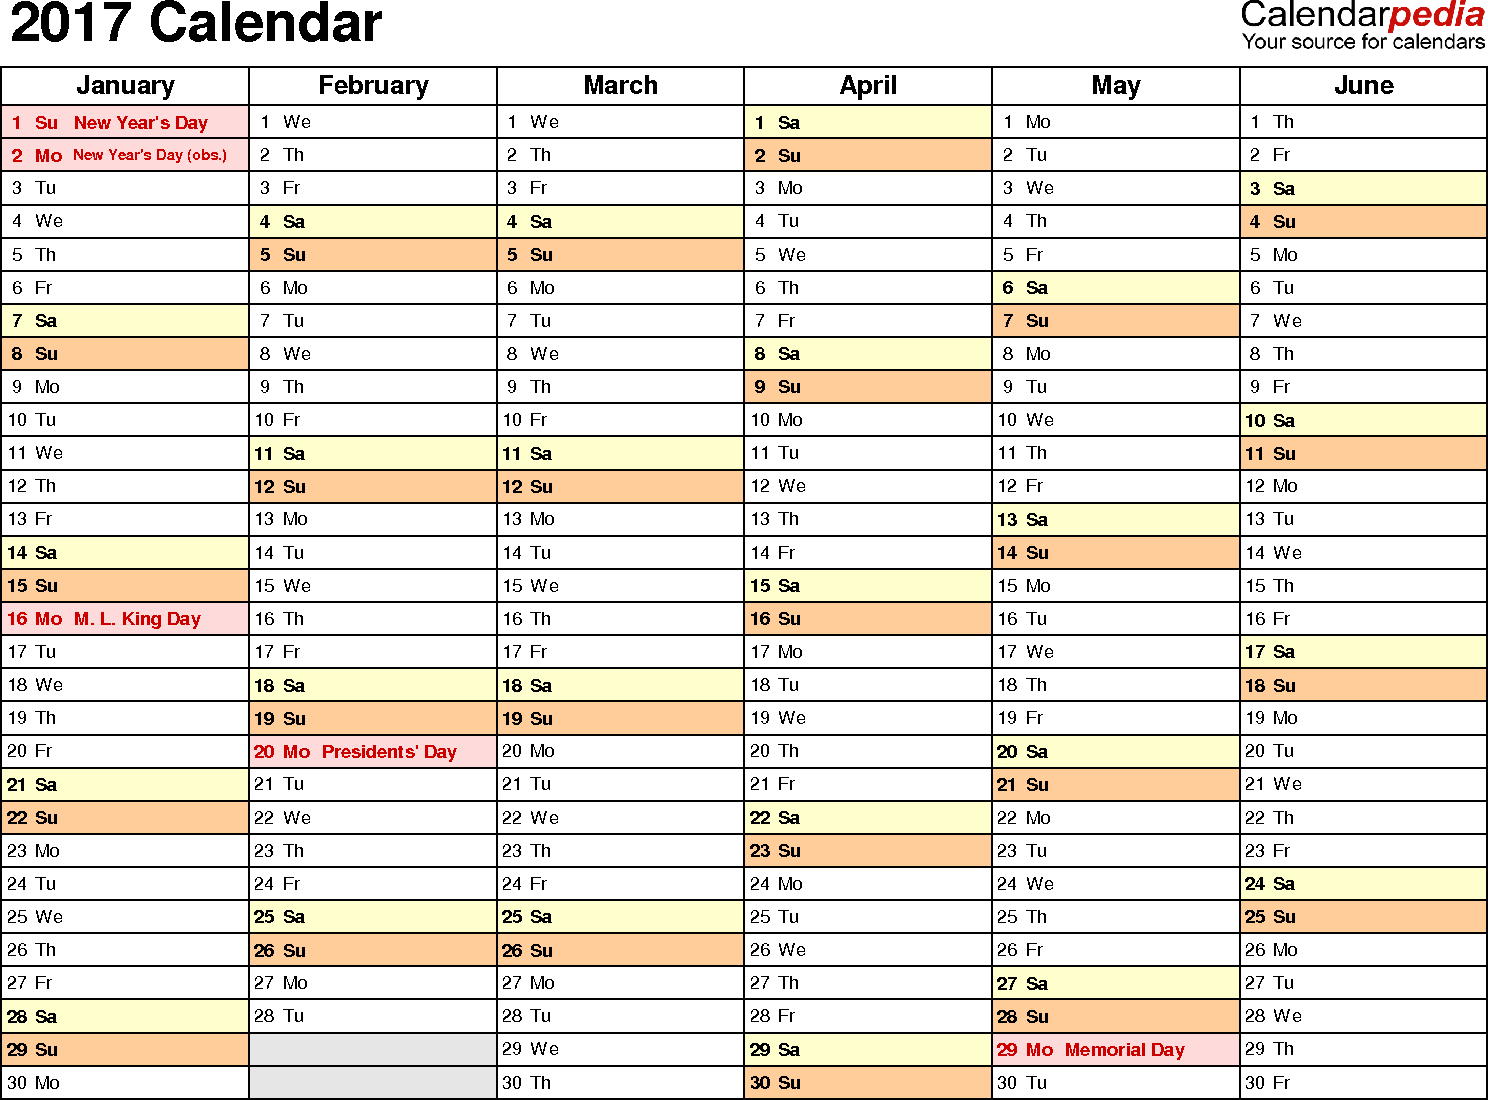 Ediblewildsus  Splendid  Calendar  Download  Free Printable Excel Templates Xls With Interesting Template   Calendar For Excel Months Horizontally  Pages Landscape Orientation With Charming If Cell Is Blank Excel Also Project Management Timeline Excel In Addition Make Labels In Excel And Access Vba Export Query To Excel As Well As Loan Amortization In Excel Additionally Define Function In Excel From Calendarpediacom With Ediblewildsus  Interesting  Calendar  Download  Free Printable Excel Templates Xls With Charming Template   Calendar For Excel Months Horizontally  Pages Landscape Orientation And Splendid If Cell Is Blank Excel Also Project Management Timeline Excel In Addition Make Labels In Excel From Calendarpediacom